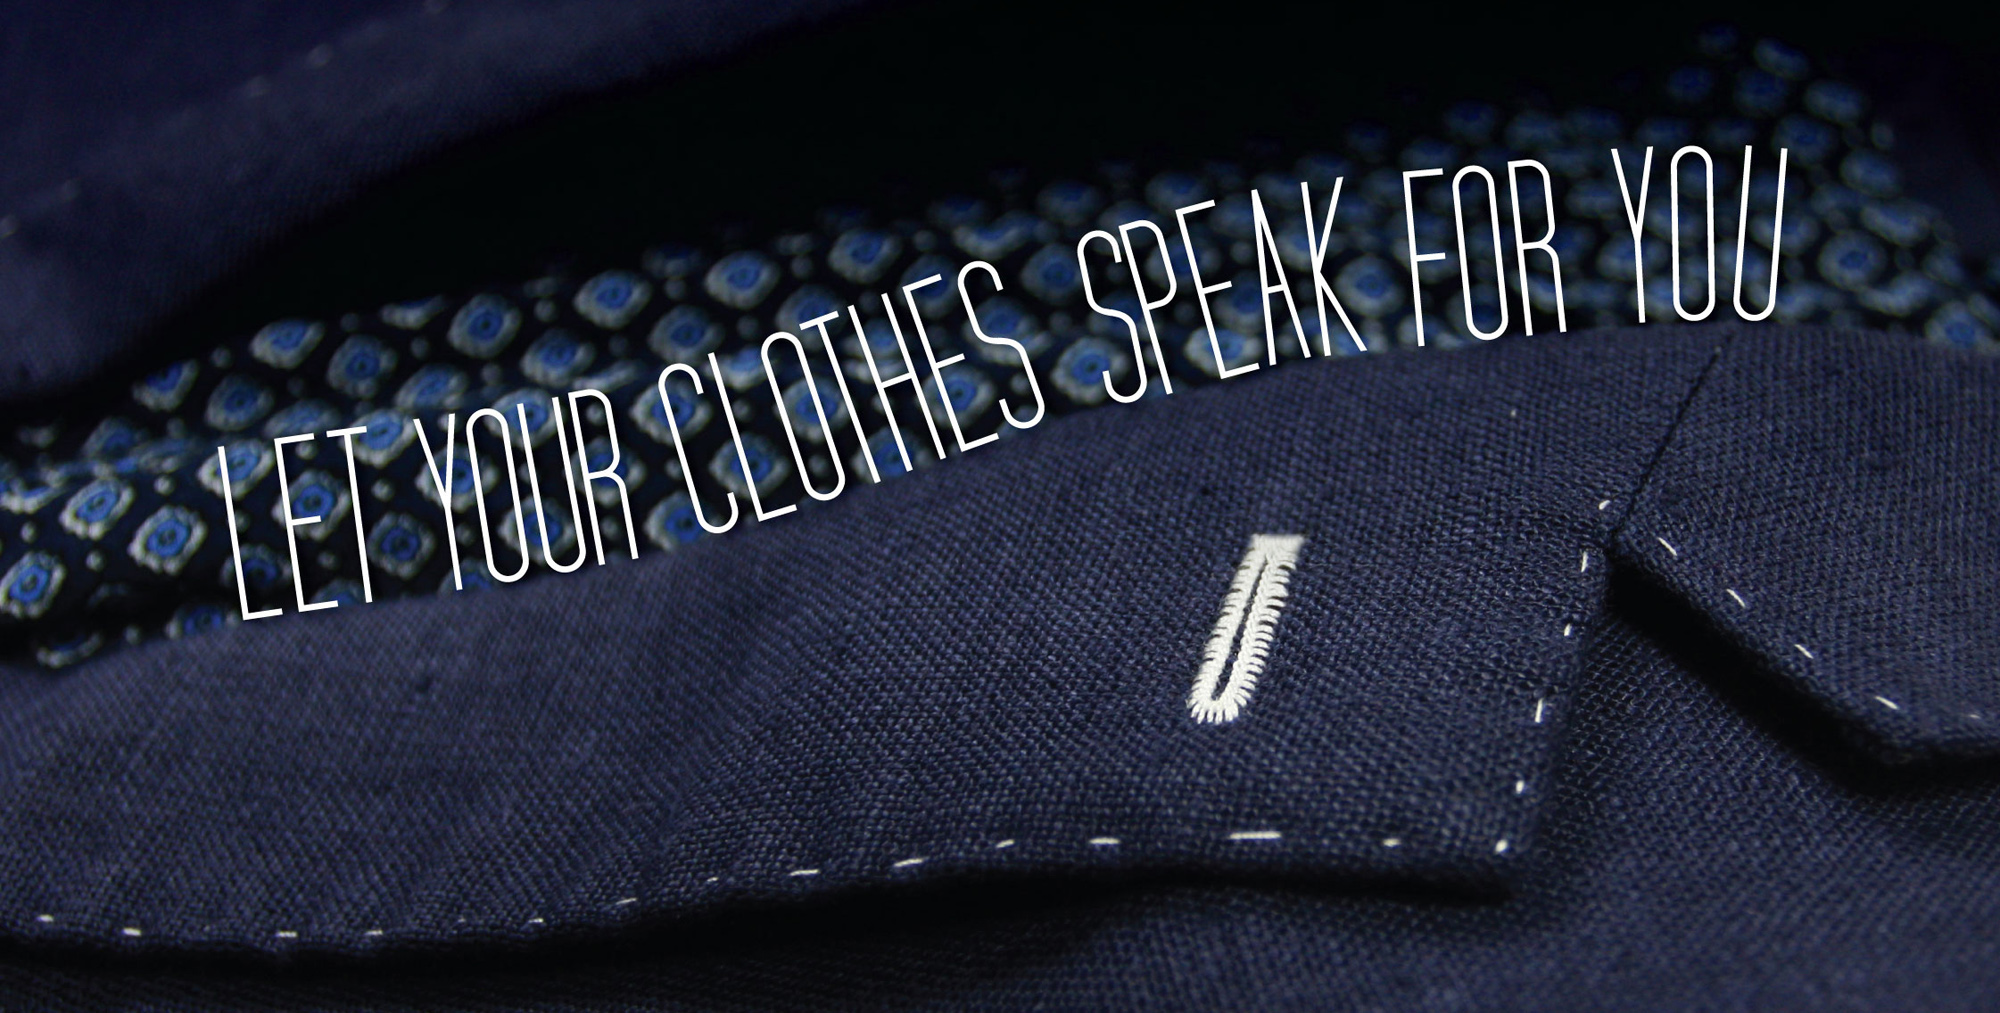 Let your cloths speak for you